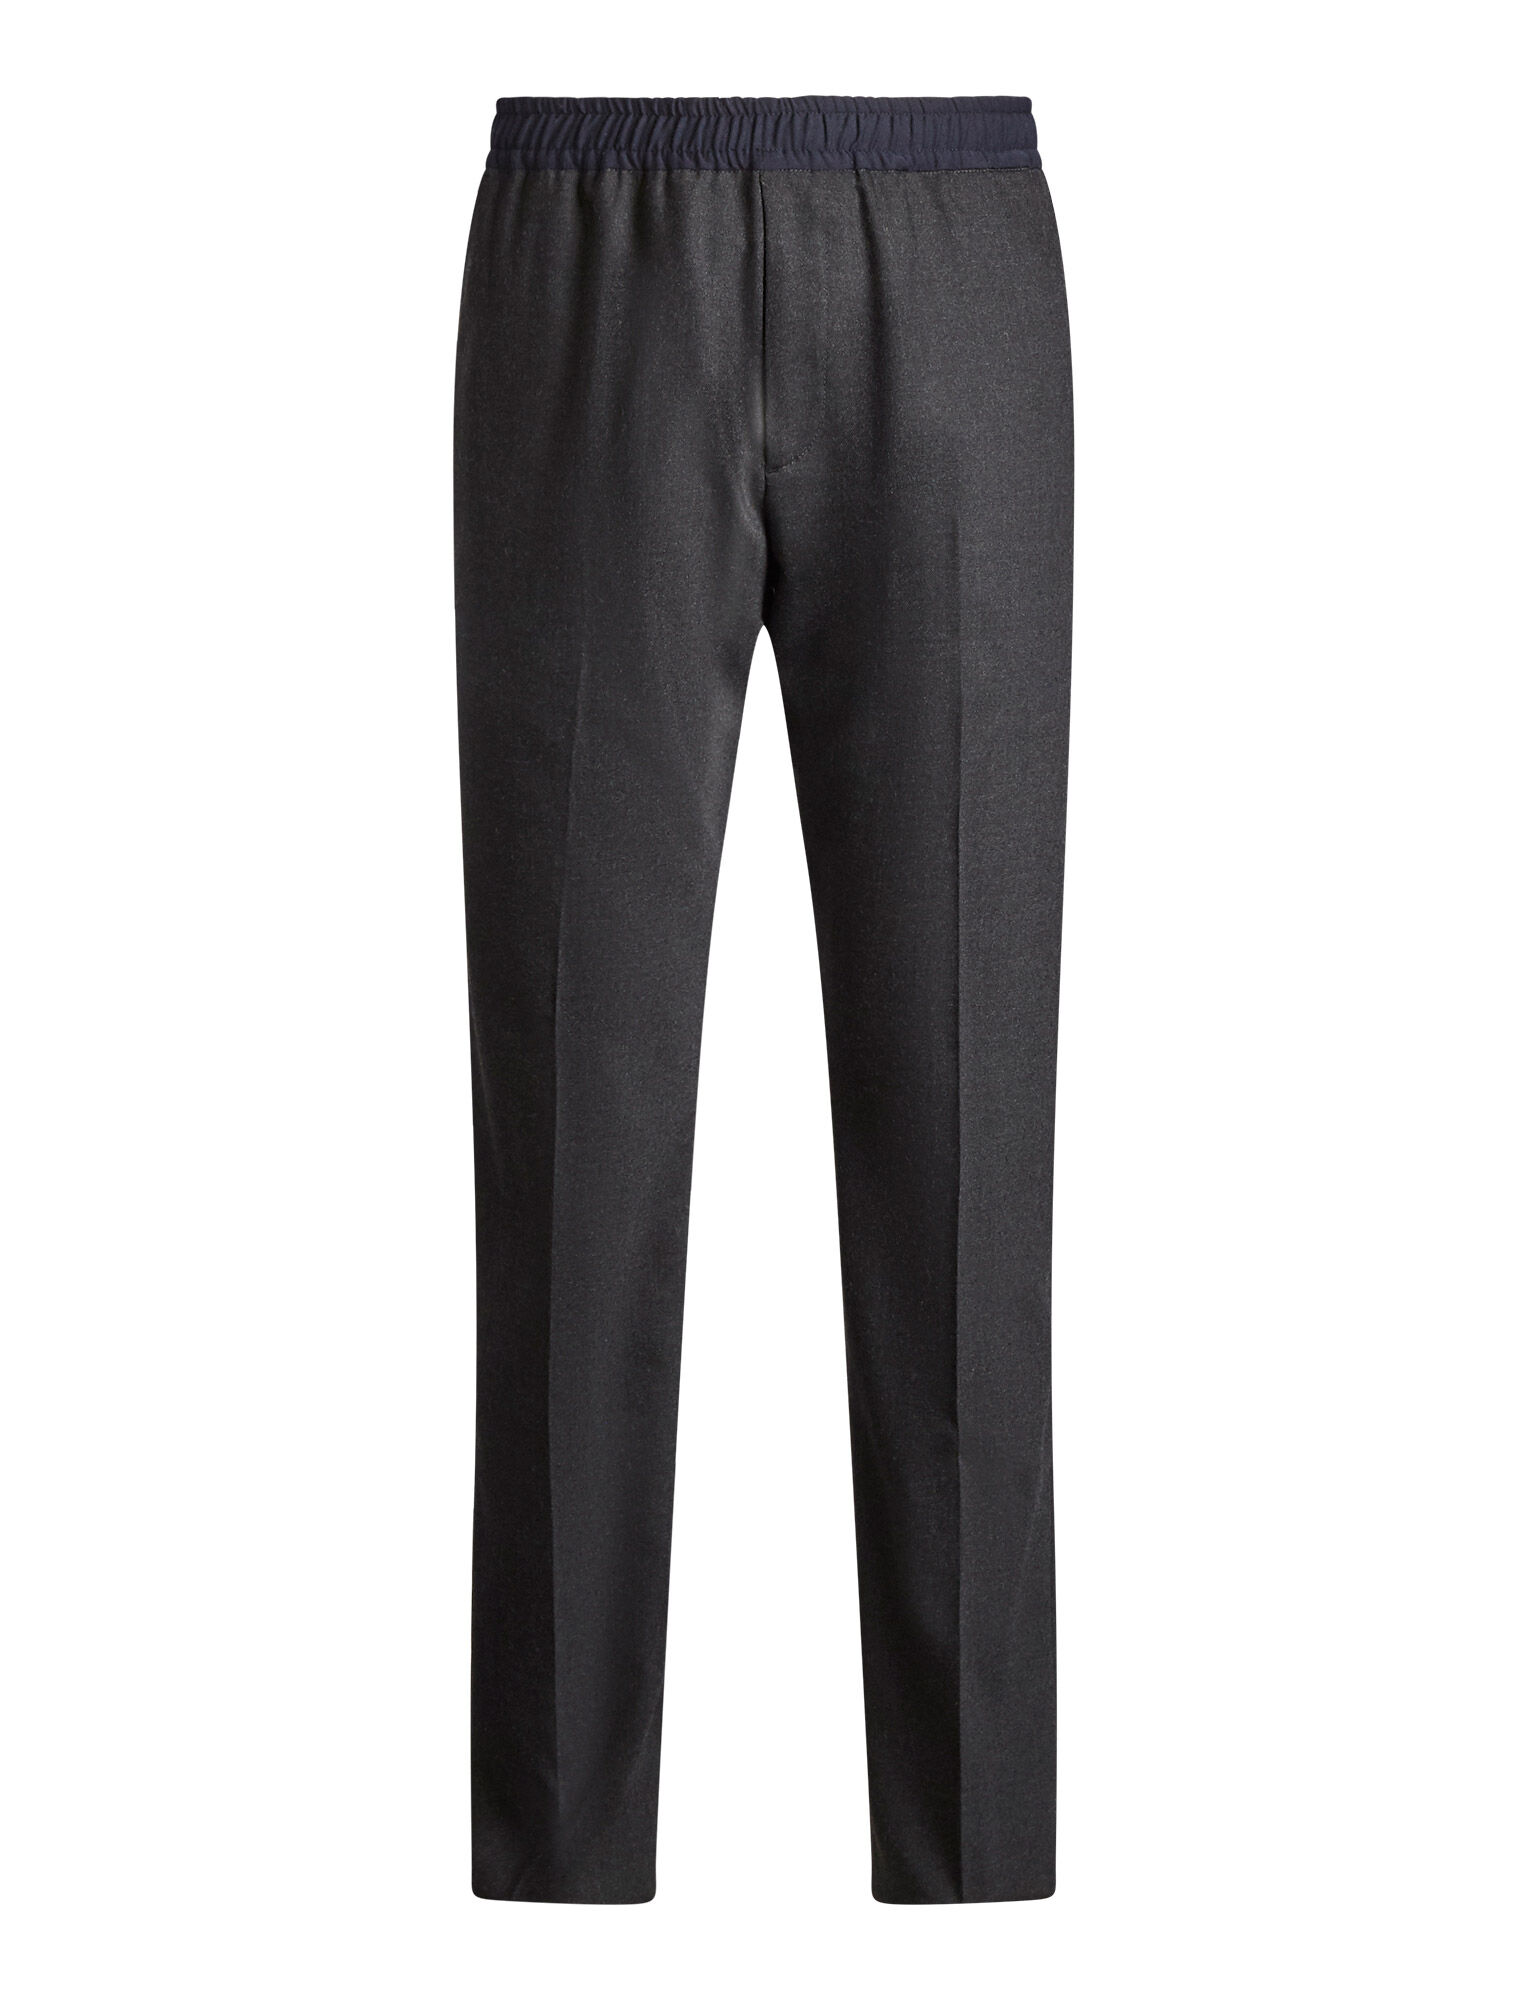 Joseph, Eugene Flannel Stretch Trousers, in CHARCOAL